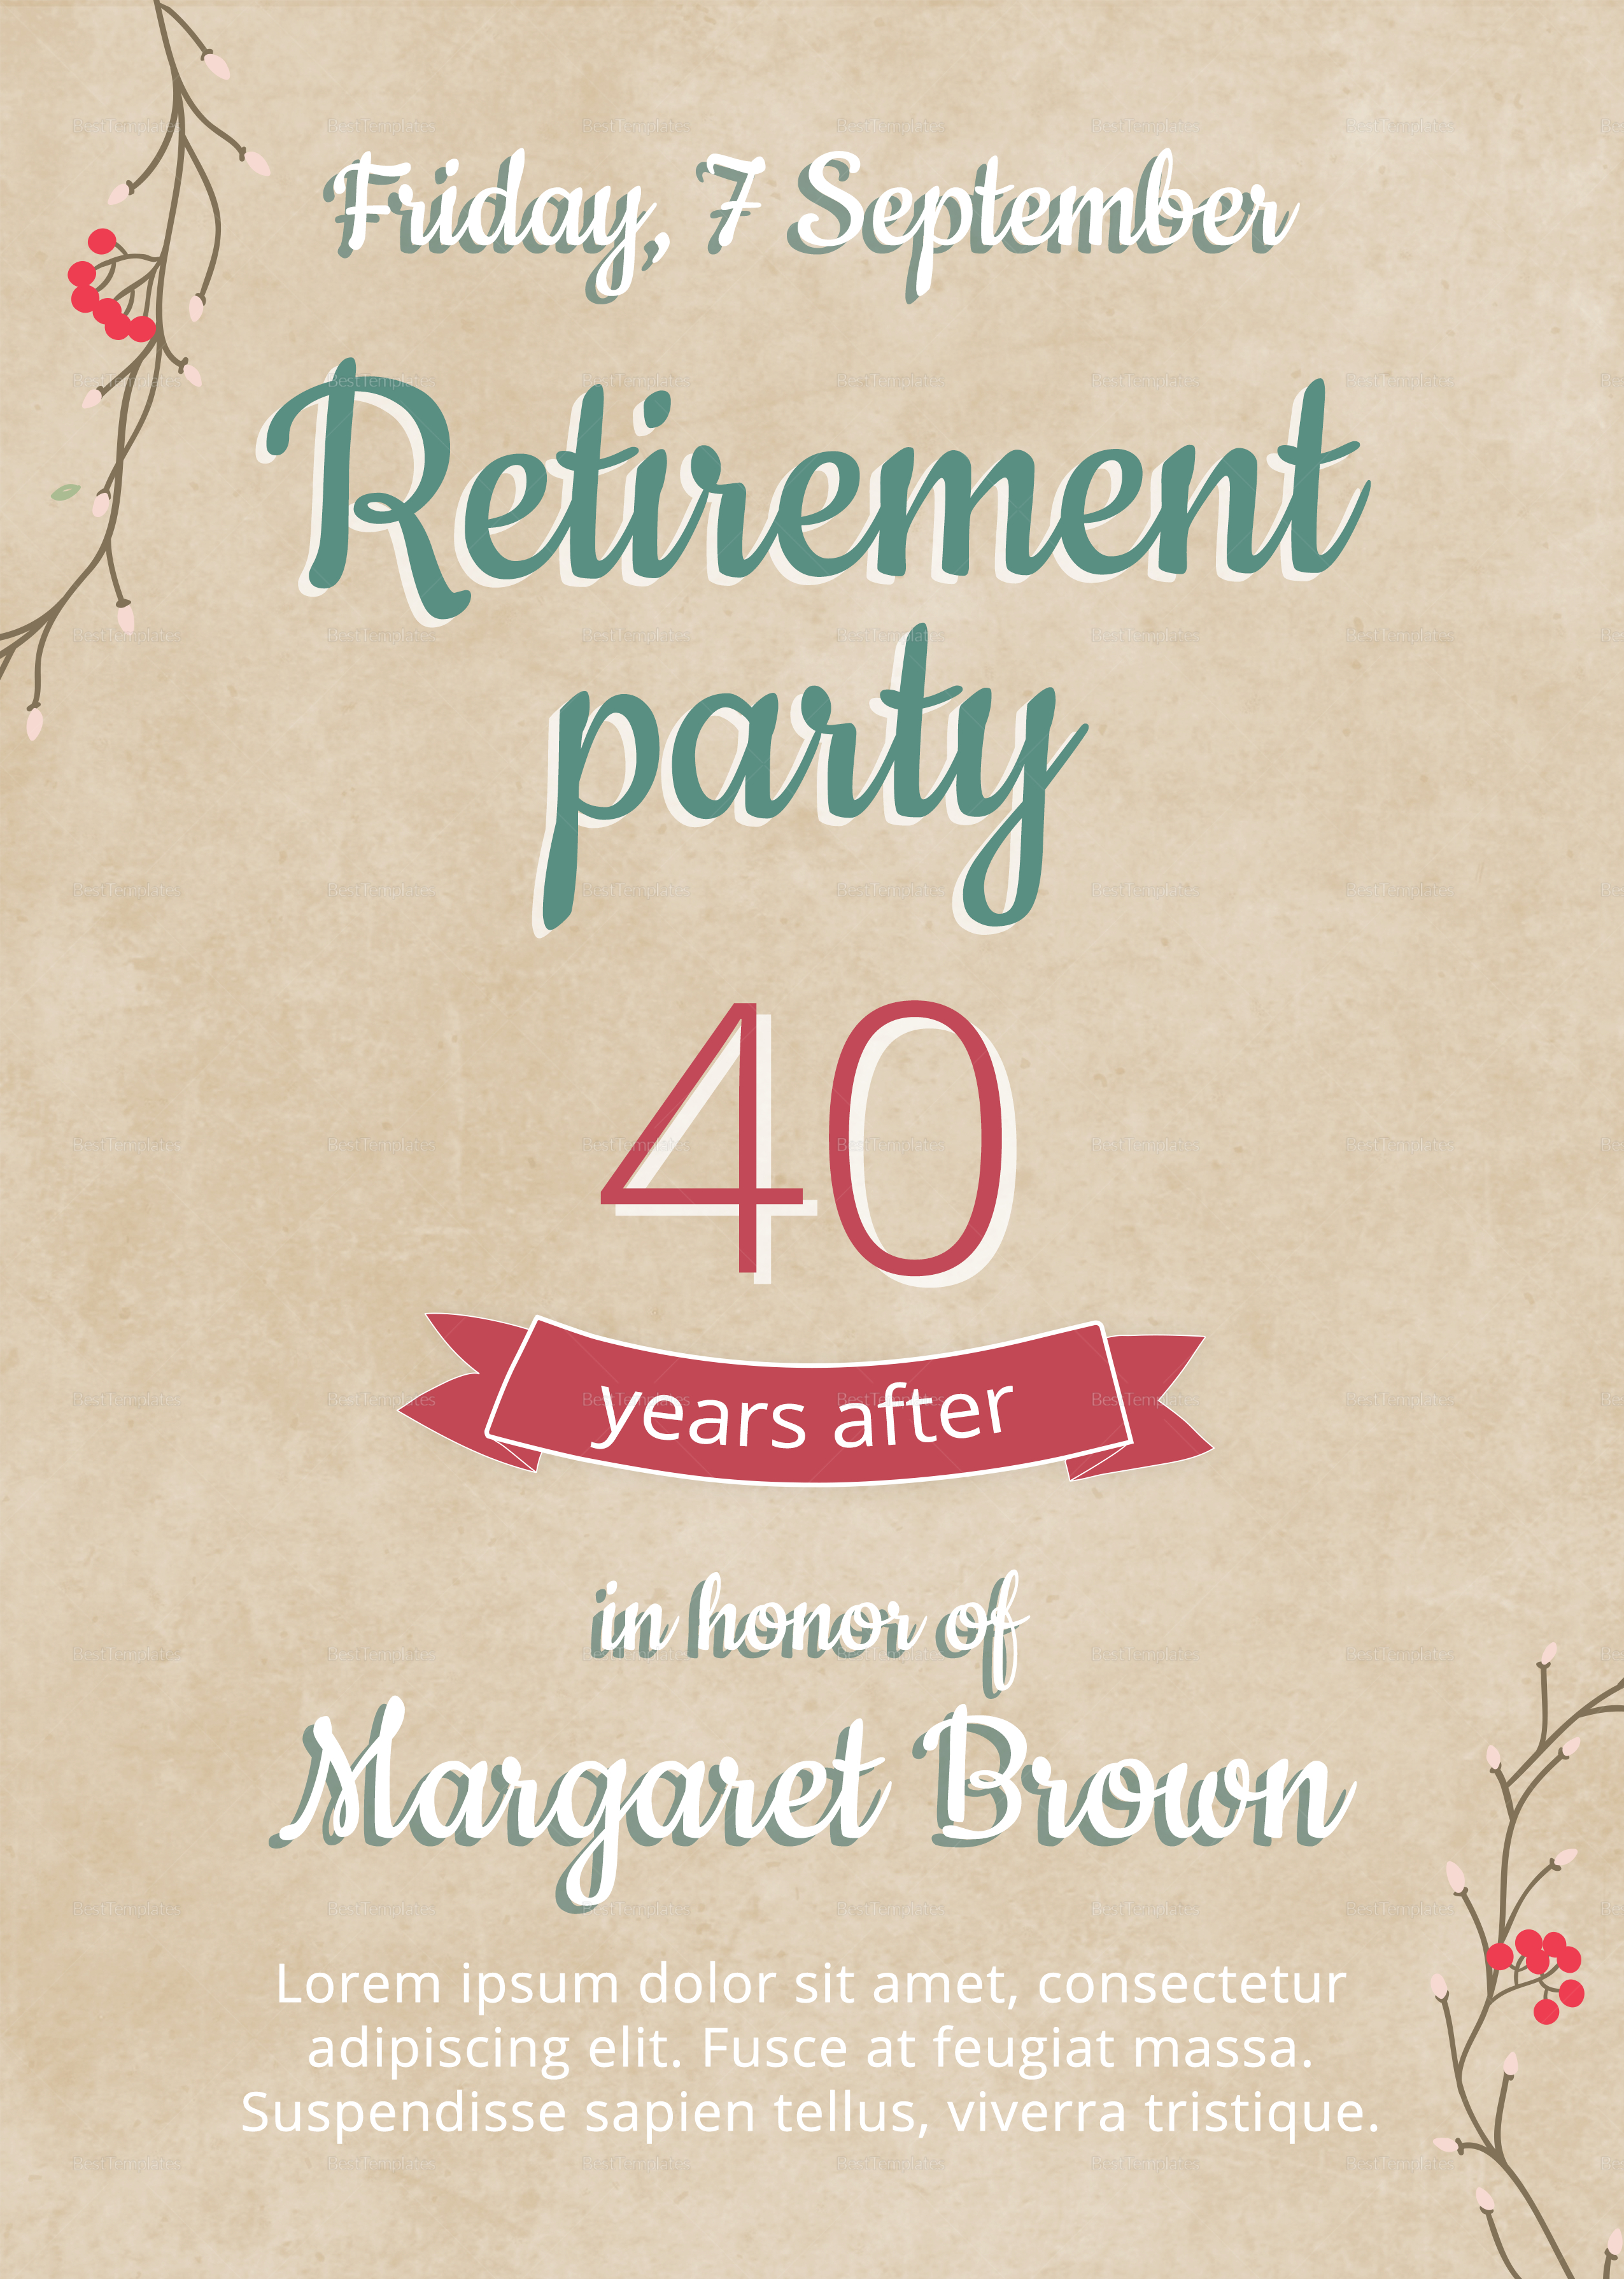 flyer template for retirement party  Retirement Party Flyer Design Template in PSD, Word ..